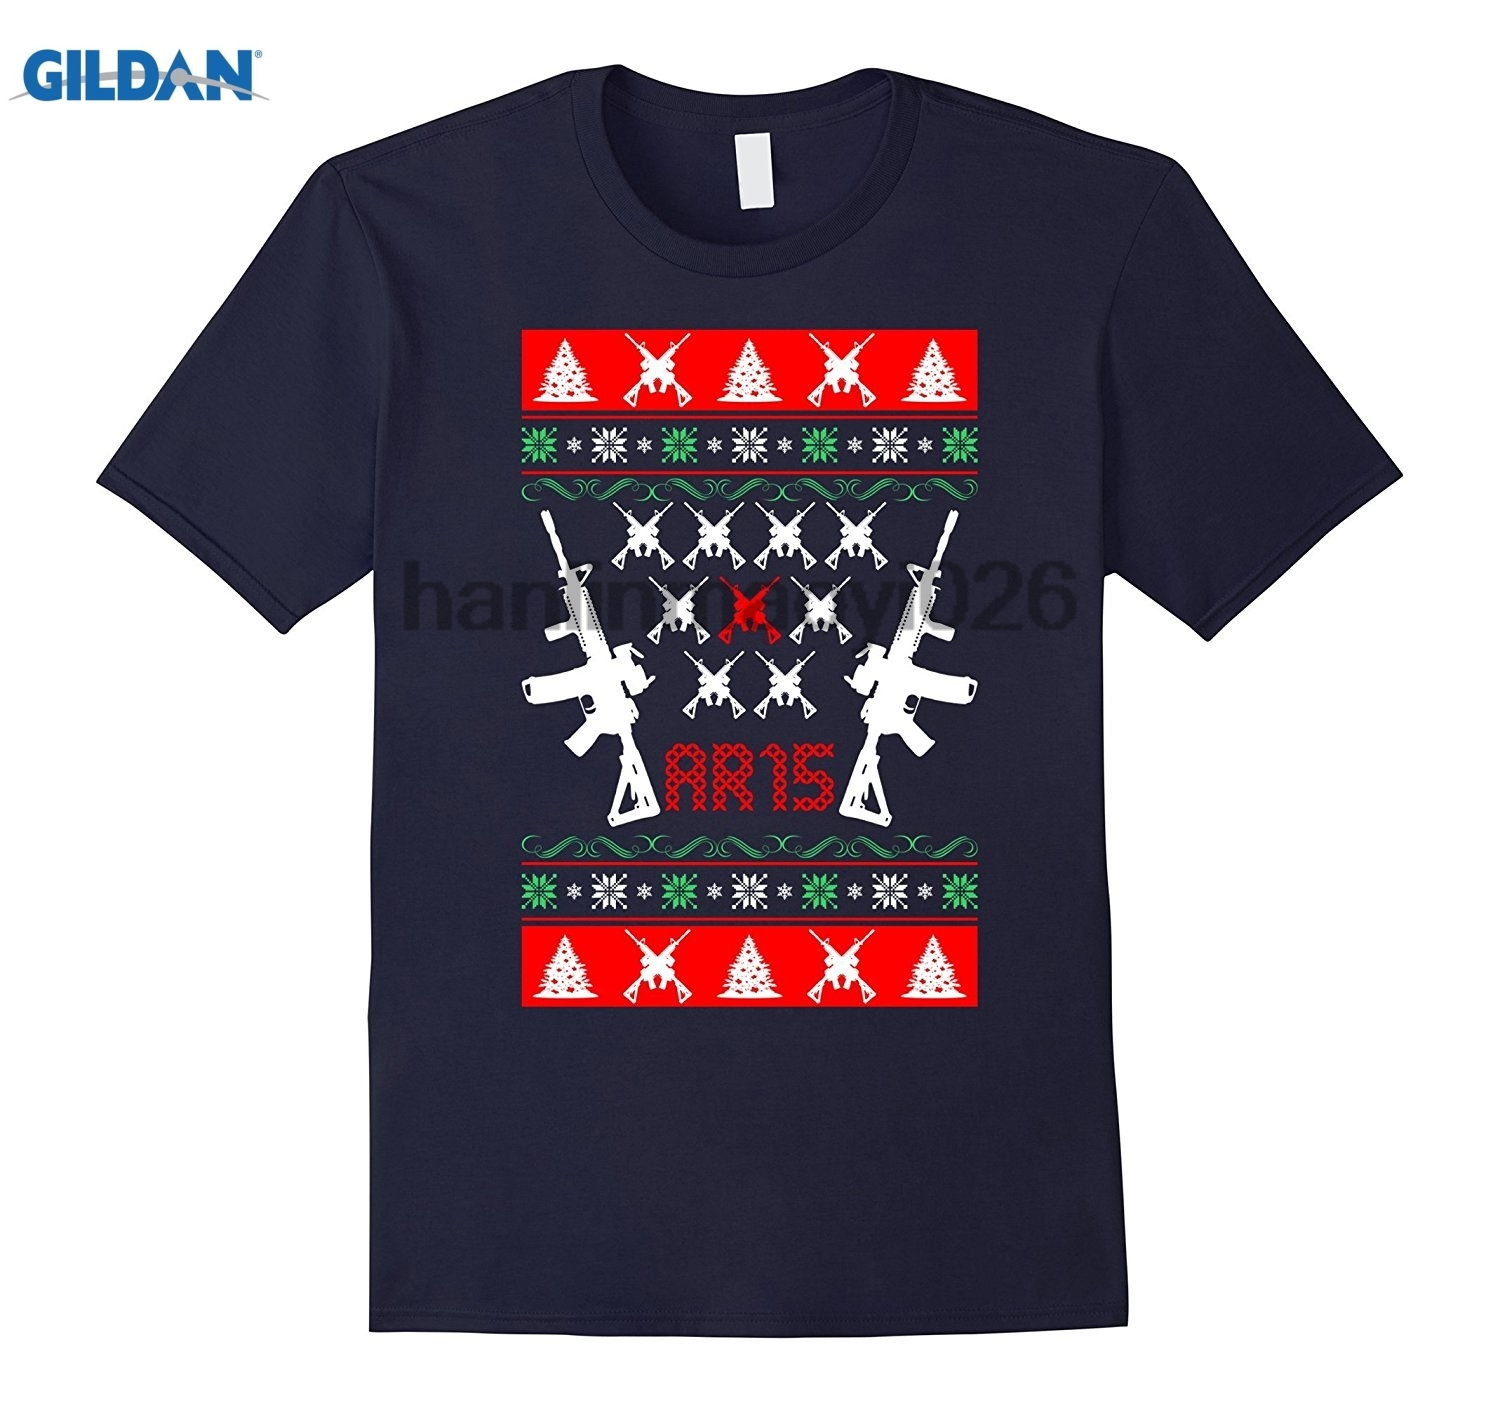 GILDAN Ar 15 Ar15 Ugly Christmas Sweater TShirt ...